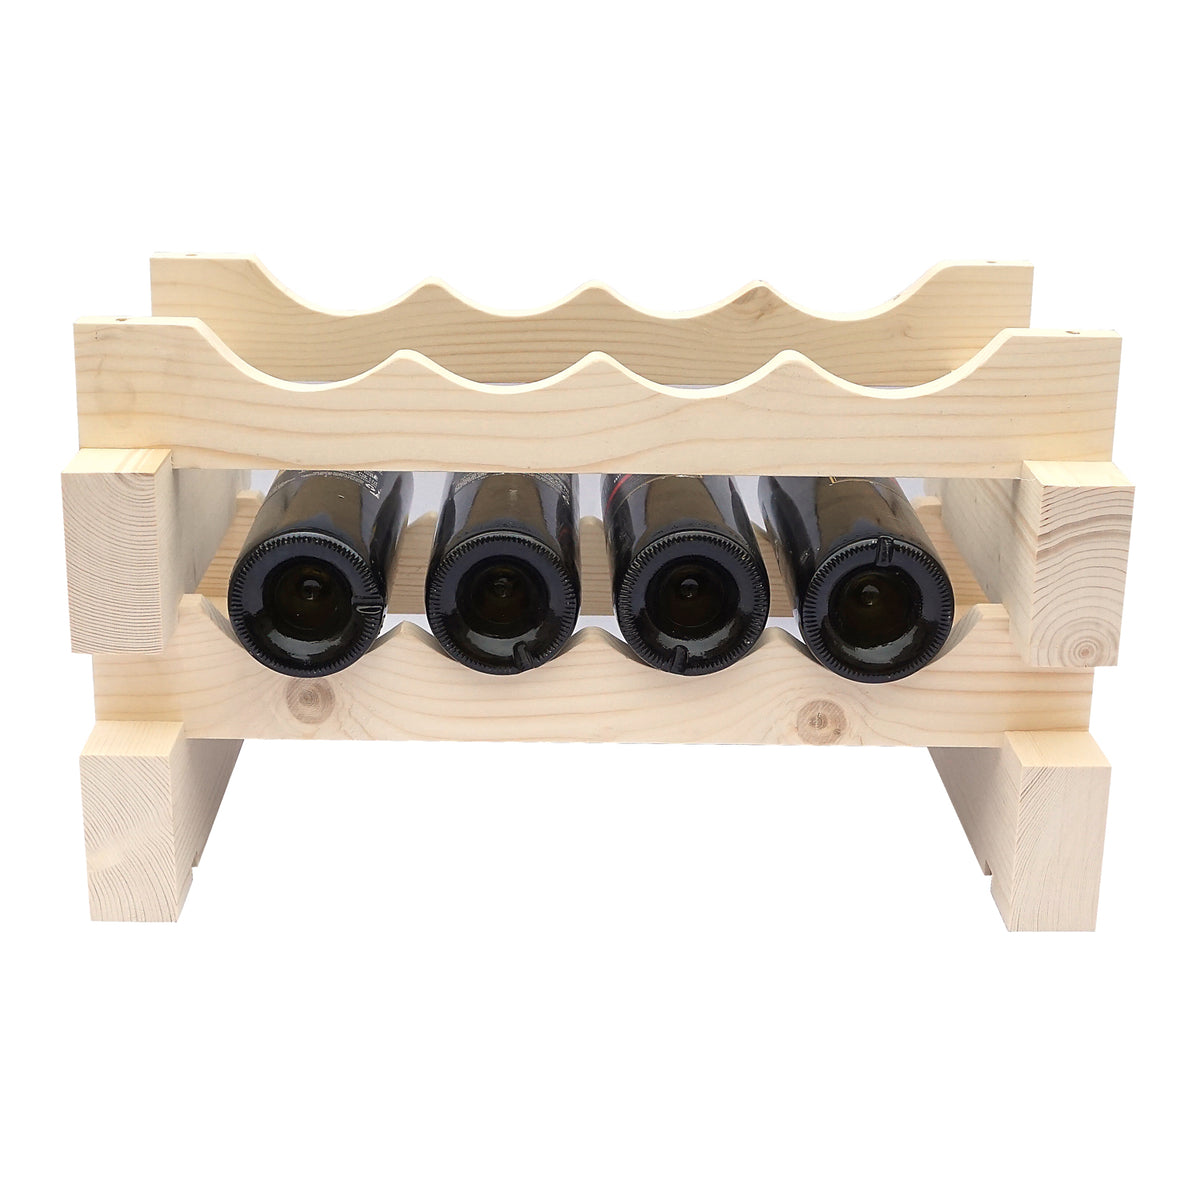 8 Bottle Modular Wine Rack - 1